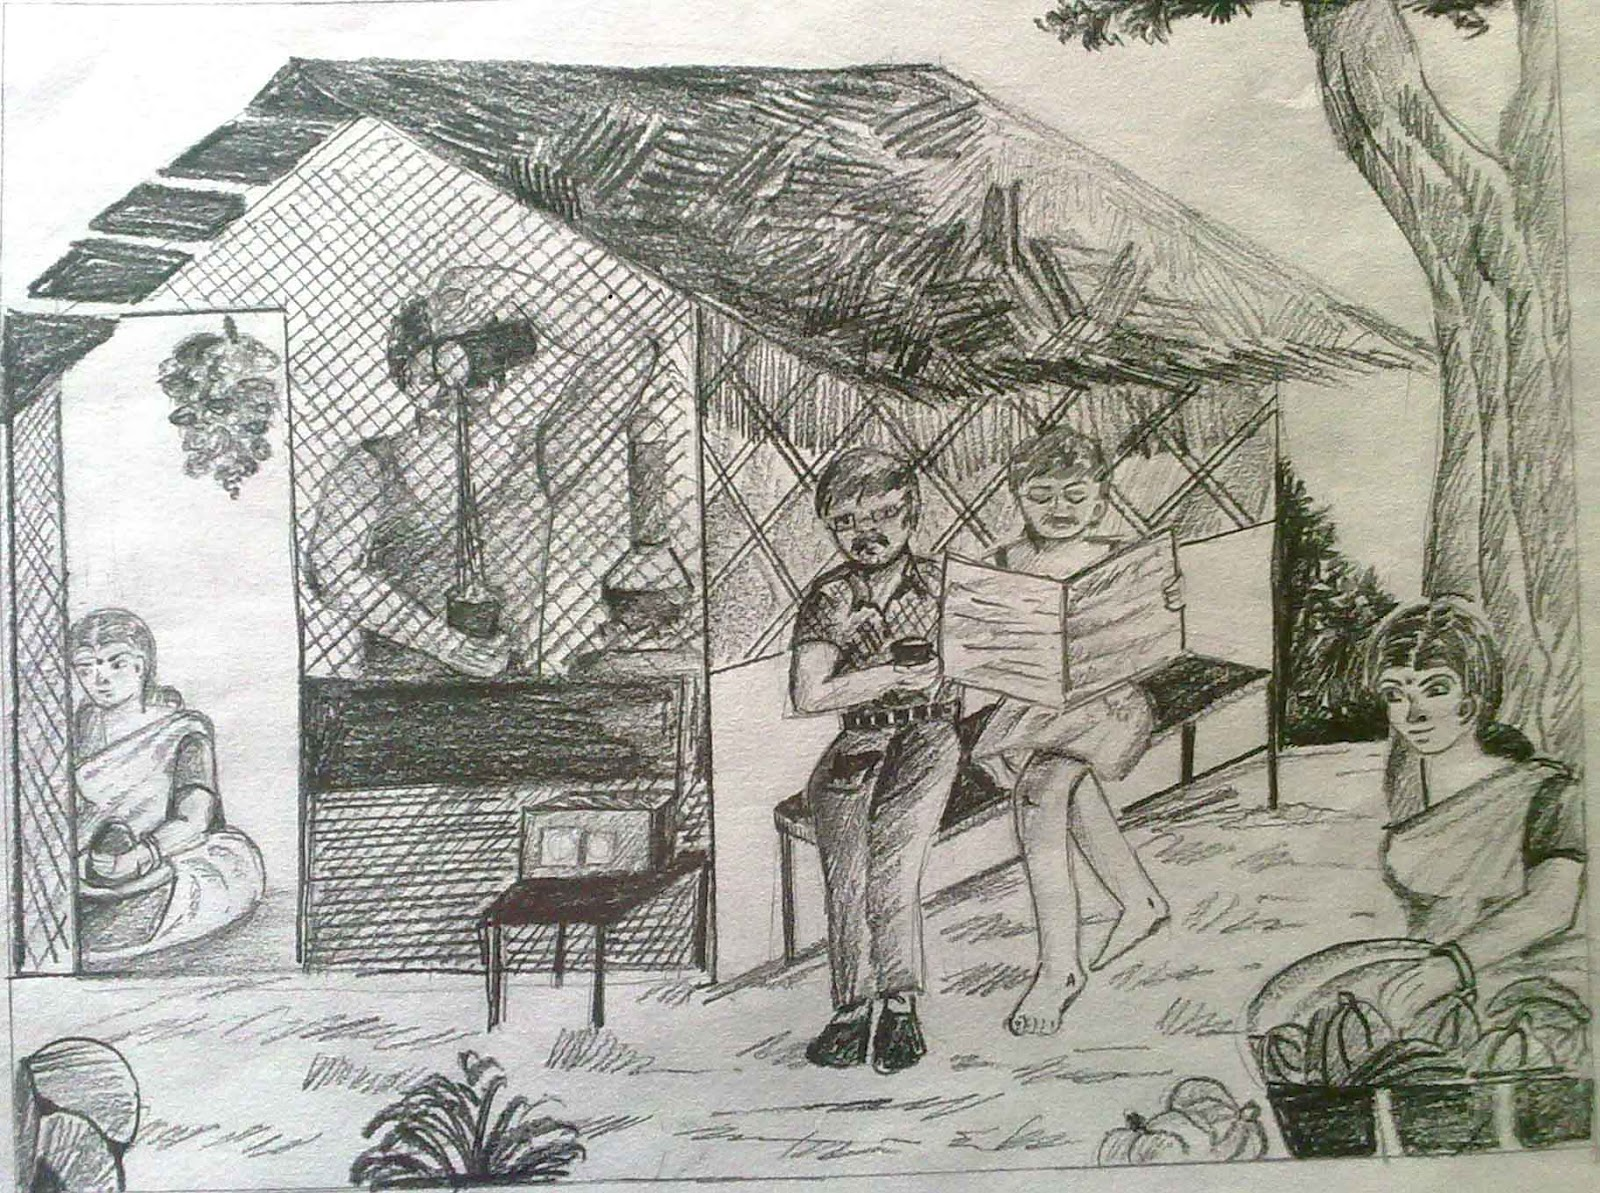 Vpkmmhss puthur pallikkal pencil drawing competition